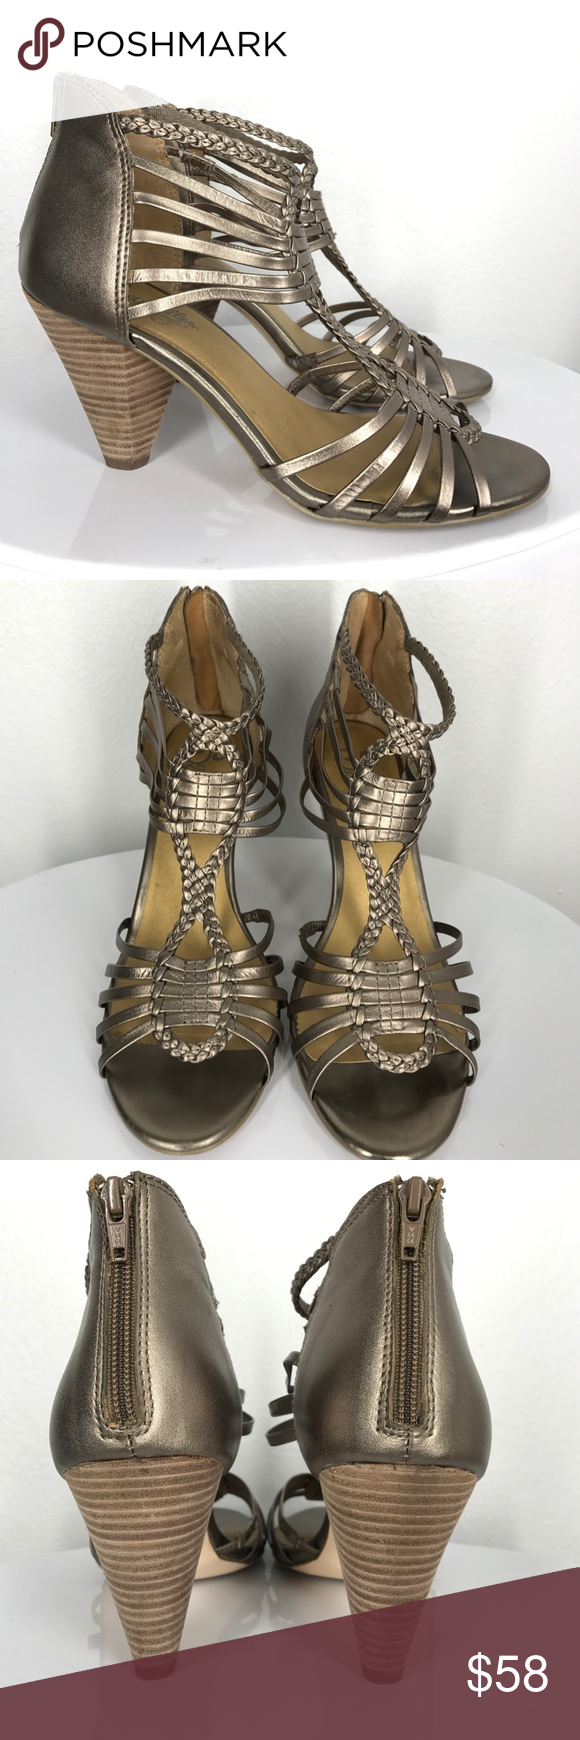 """Seychelles gold silver heels size 9 These Seychelles are in excellent condition! They are a true size 9. About 3"""" tall. Gold silver color. Seychelles Shoes Heels"""